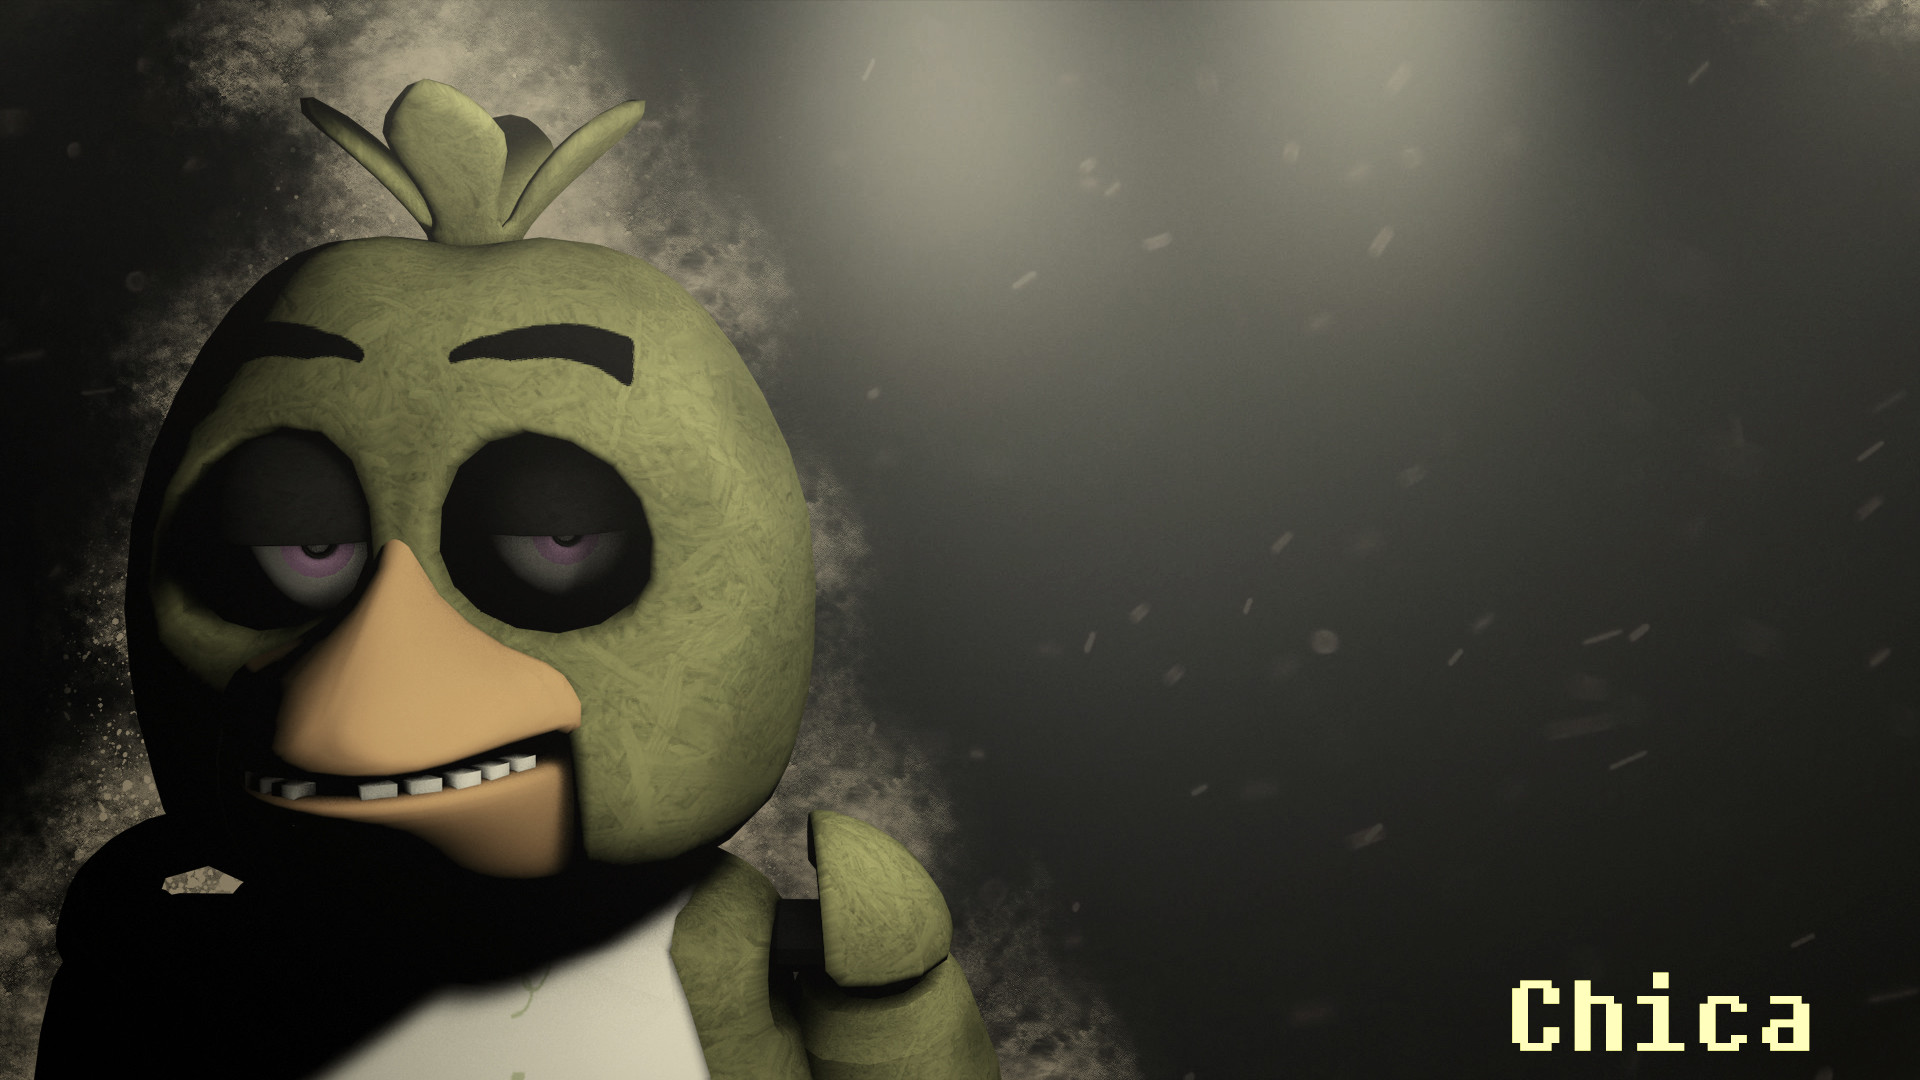 … Five Nights at Freddy's Chica Wallpaper DOWNLOAD by NiksonYT